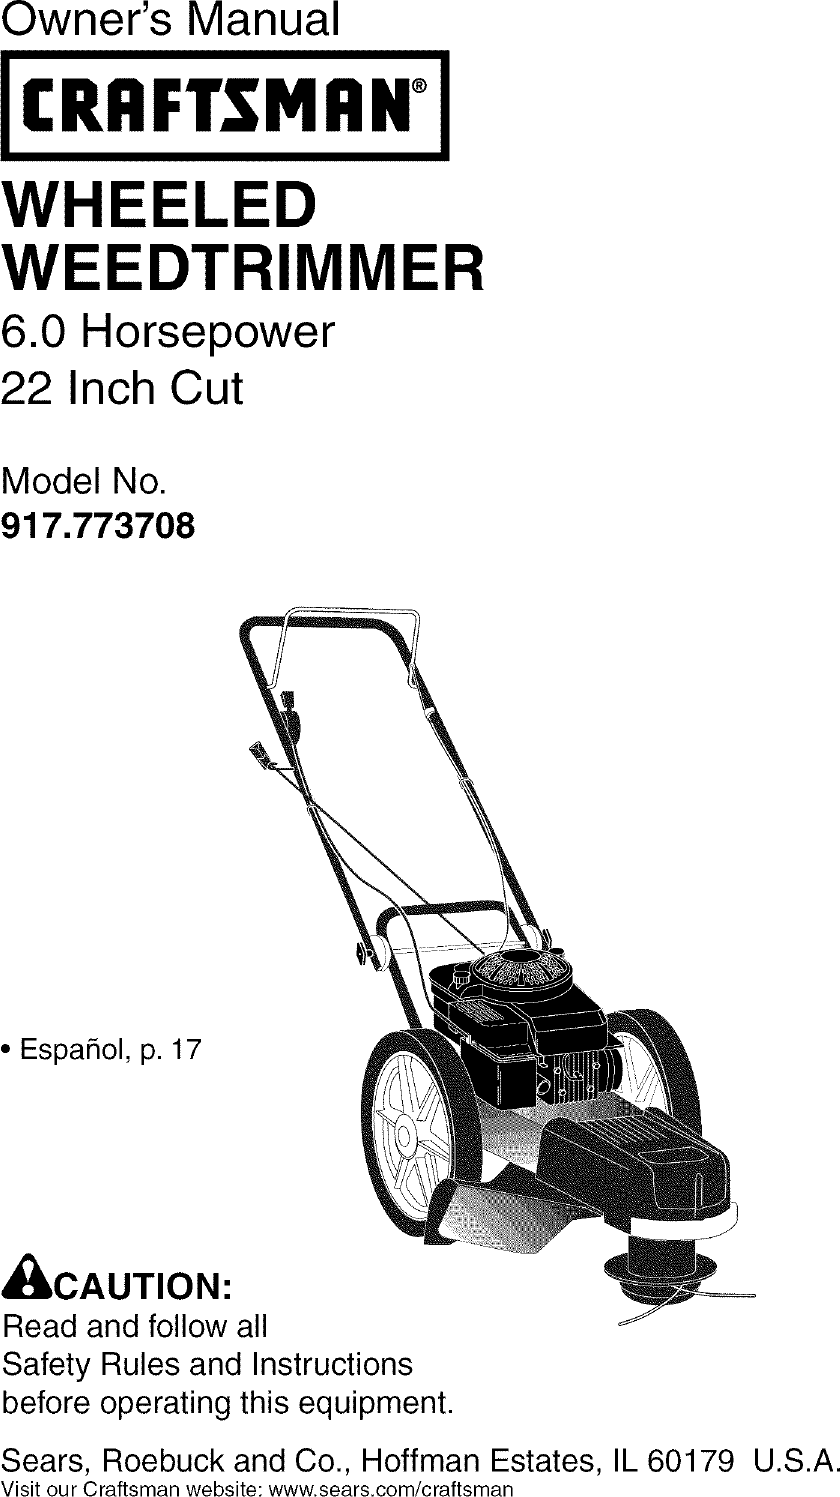 Craftsman 917773708 User Manual HIGH WHEEL WEED TRIMMER